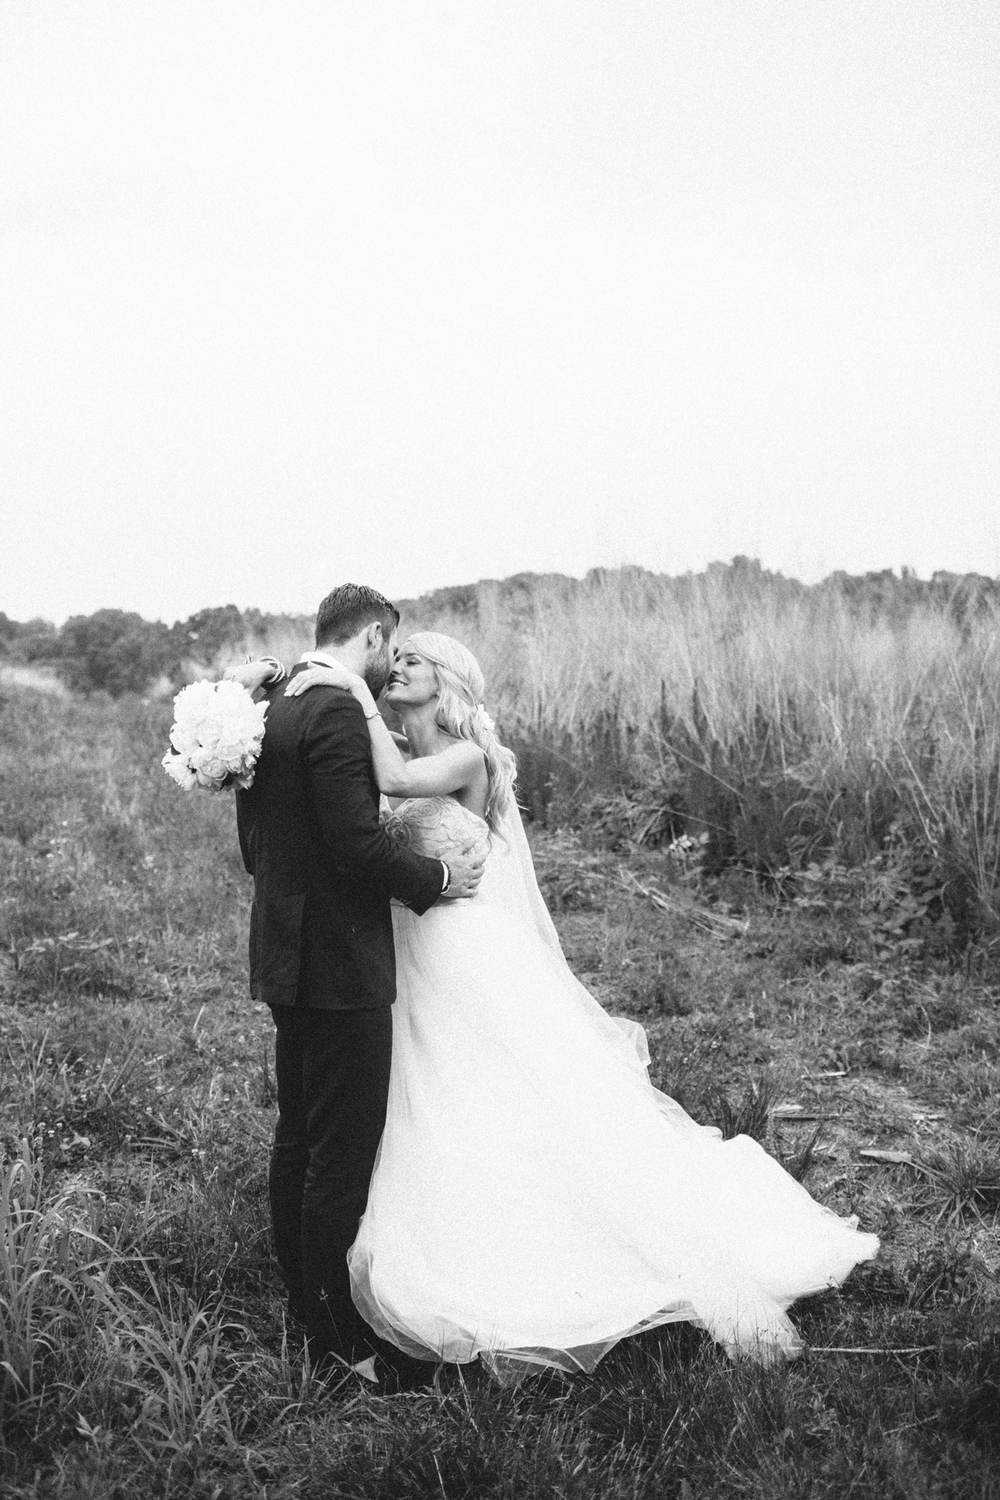 south_carolina_farm_wedding_rustic_chic_surprise_secret_luxe_wedding_bachelorette_emily_maynard_real_weddings-59.jpg